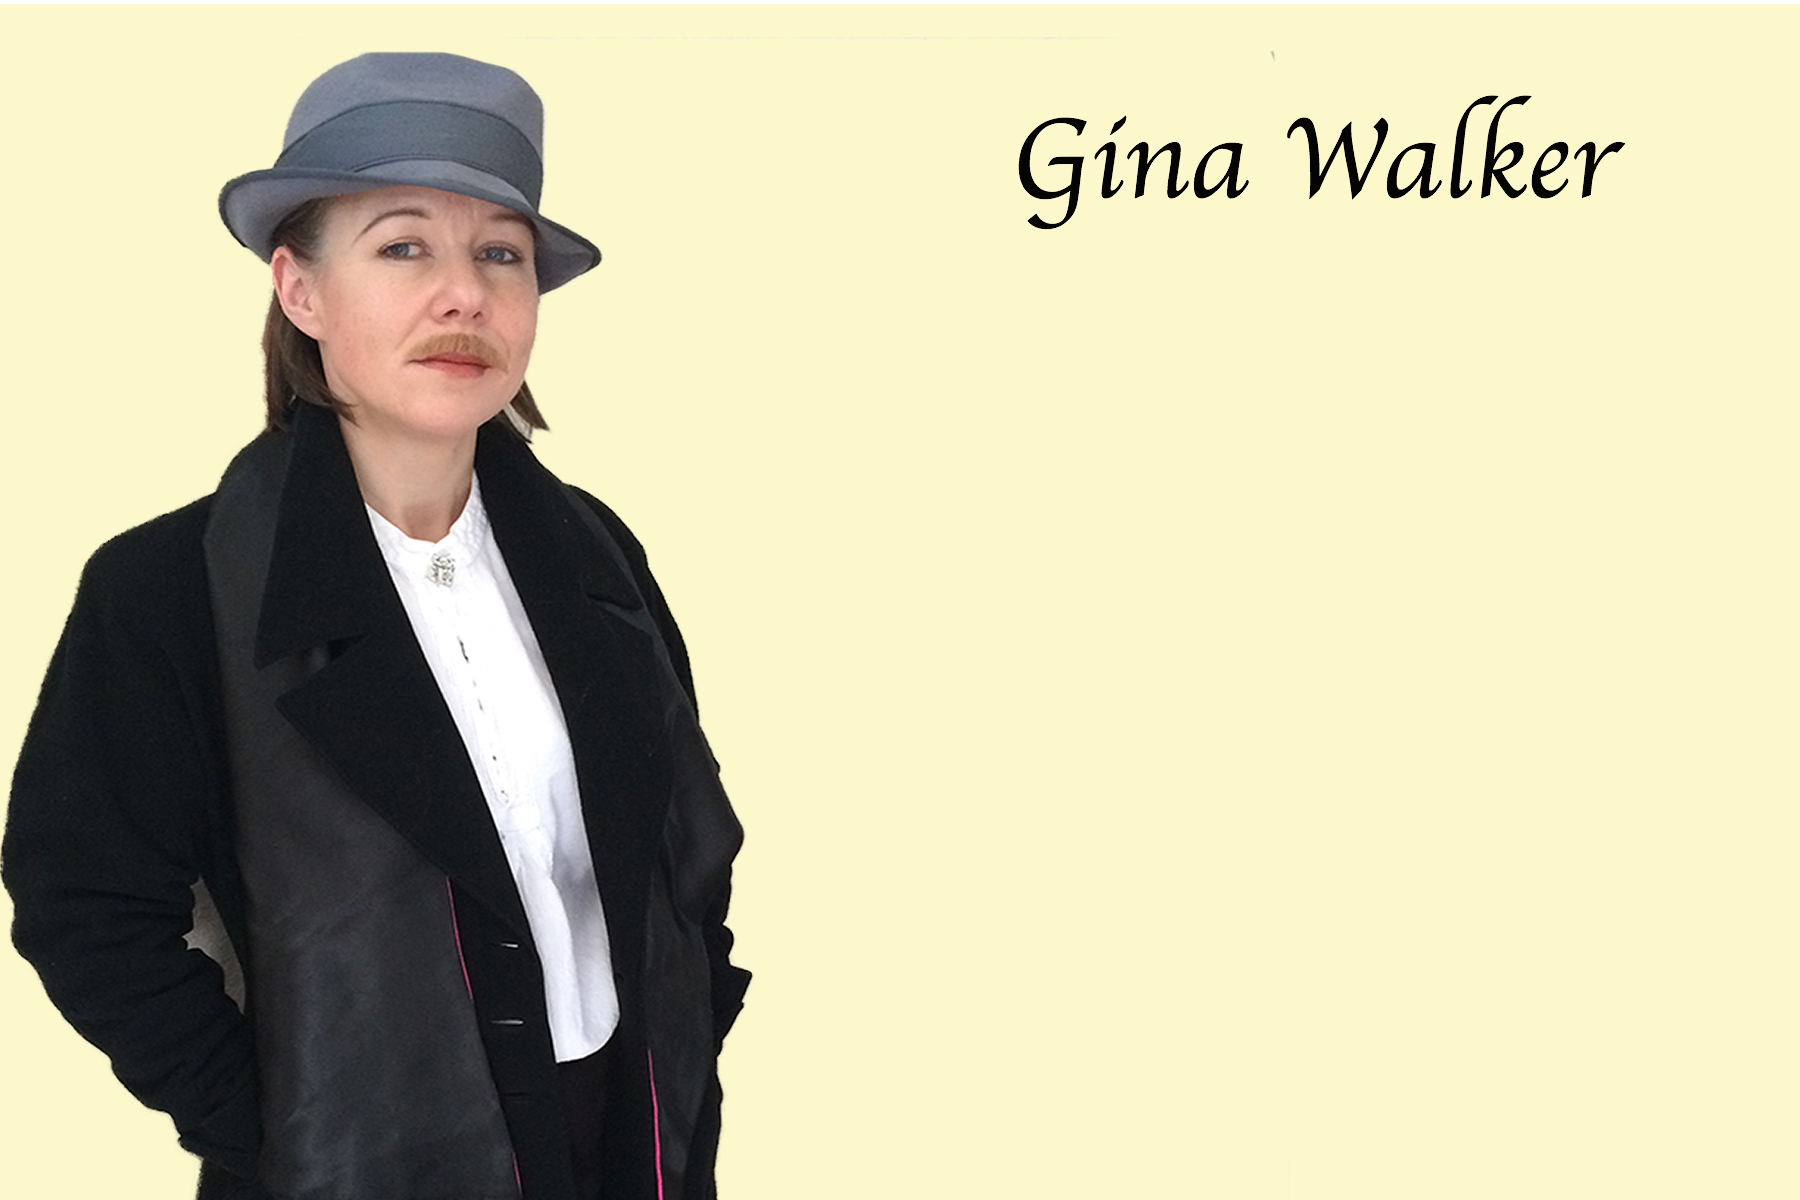 Gina moved to Colorado from England only recently, and is loving the theater scene here - as well as the gorgeous people, weather, and mountains, obviously!  She's been having fun on stage since she was a teenager, and at University was in The Cambridge Footlights.  Most recently she's appeared in  The Forsyte Saga  in Leicester, England, and  The Rimers of Eldritch  at DCTA here in Denver.  She's deeply thrilled to be in  Beth , her first show with the amazing Betsy Stage crew, and so grateful to her husband, Hamish, for his relentless support.